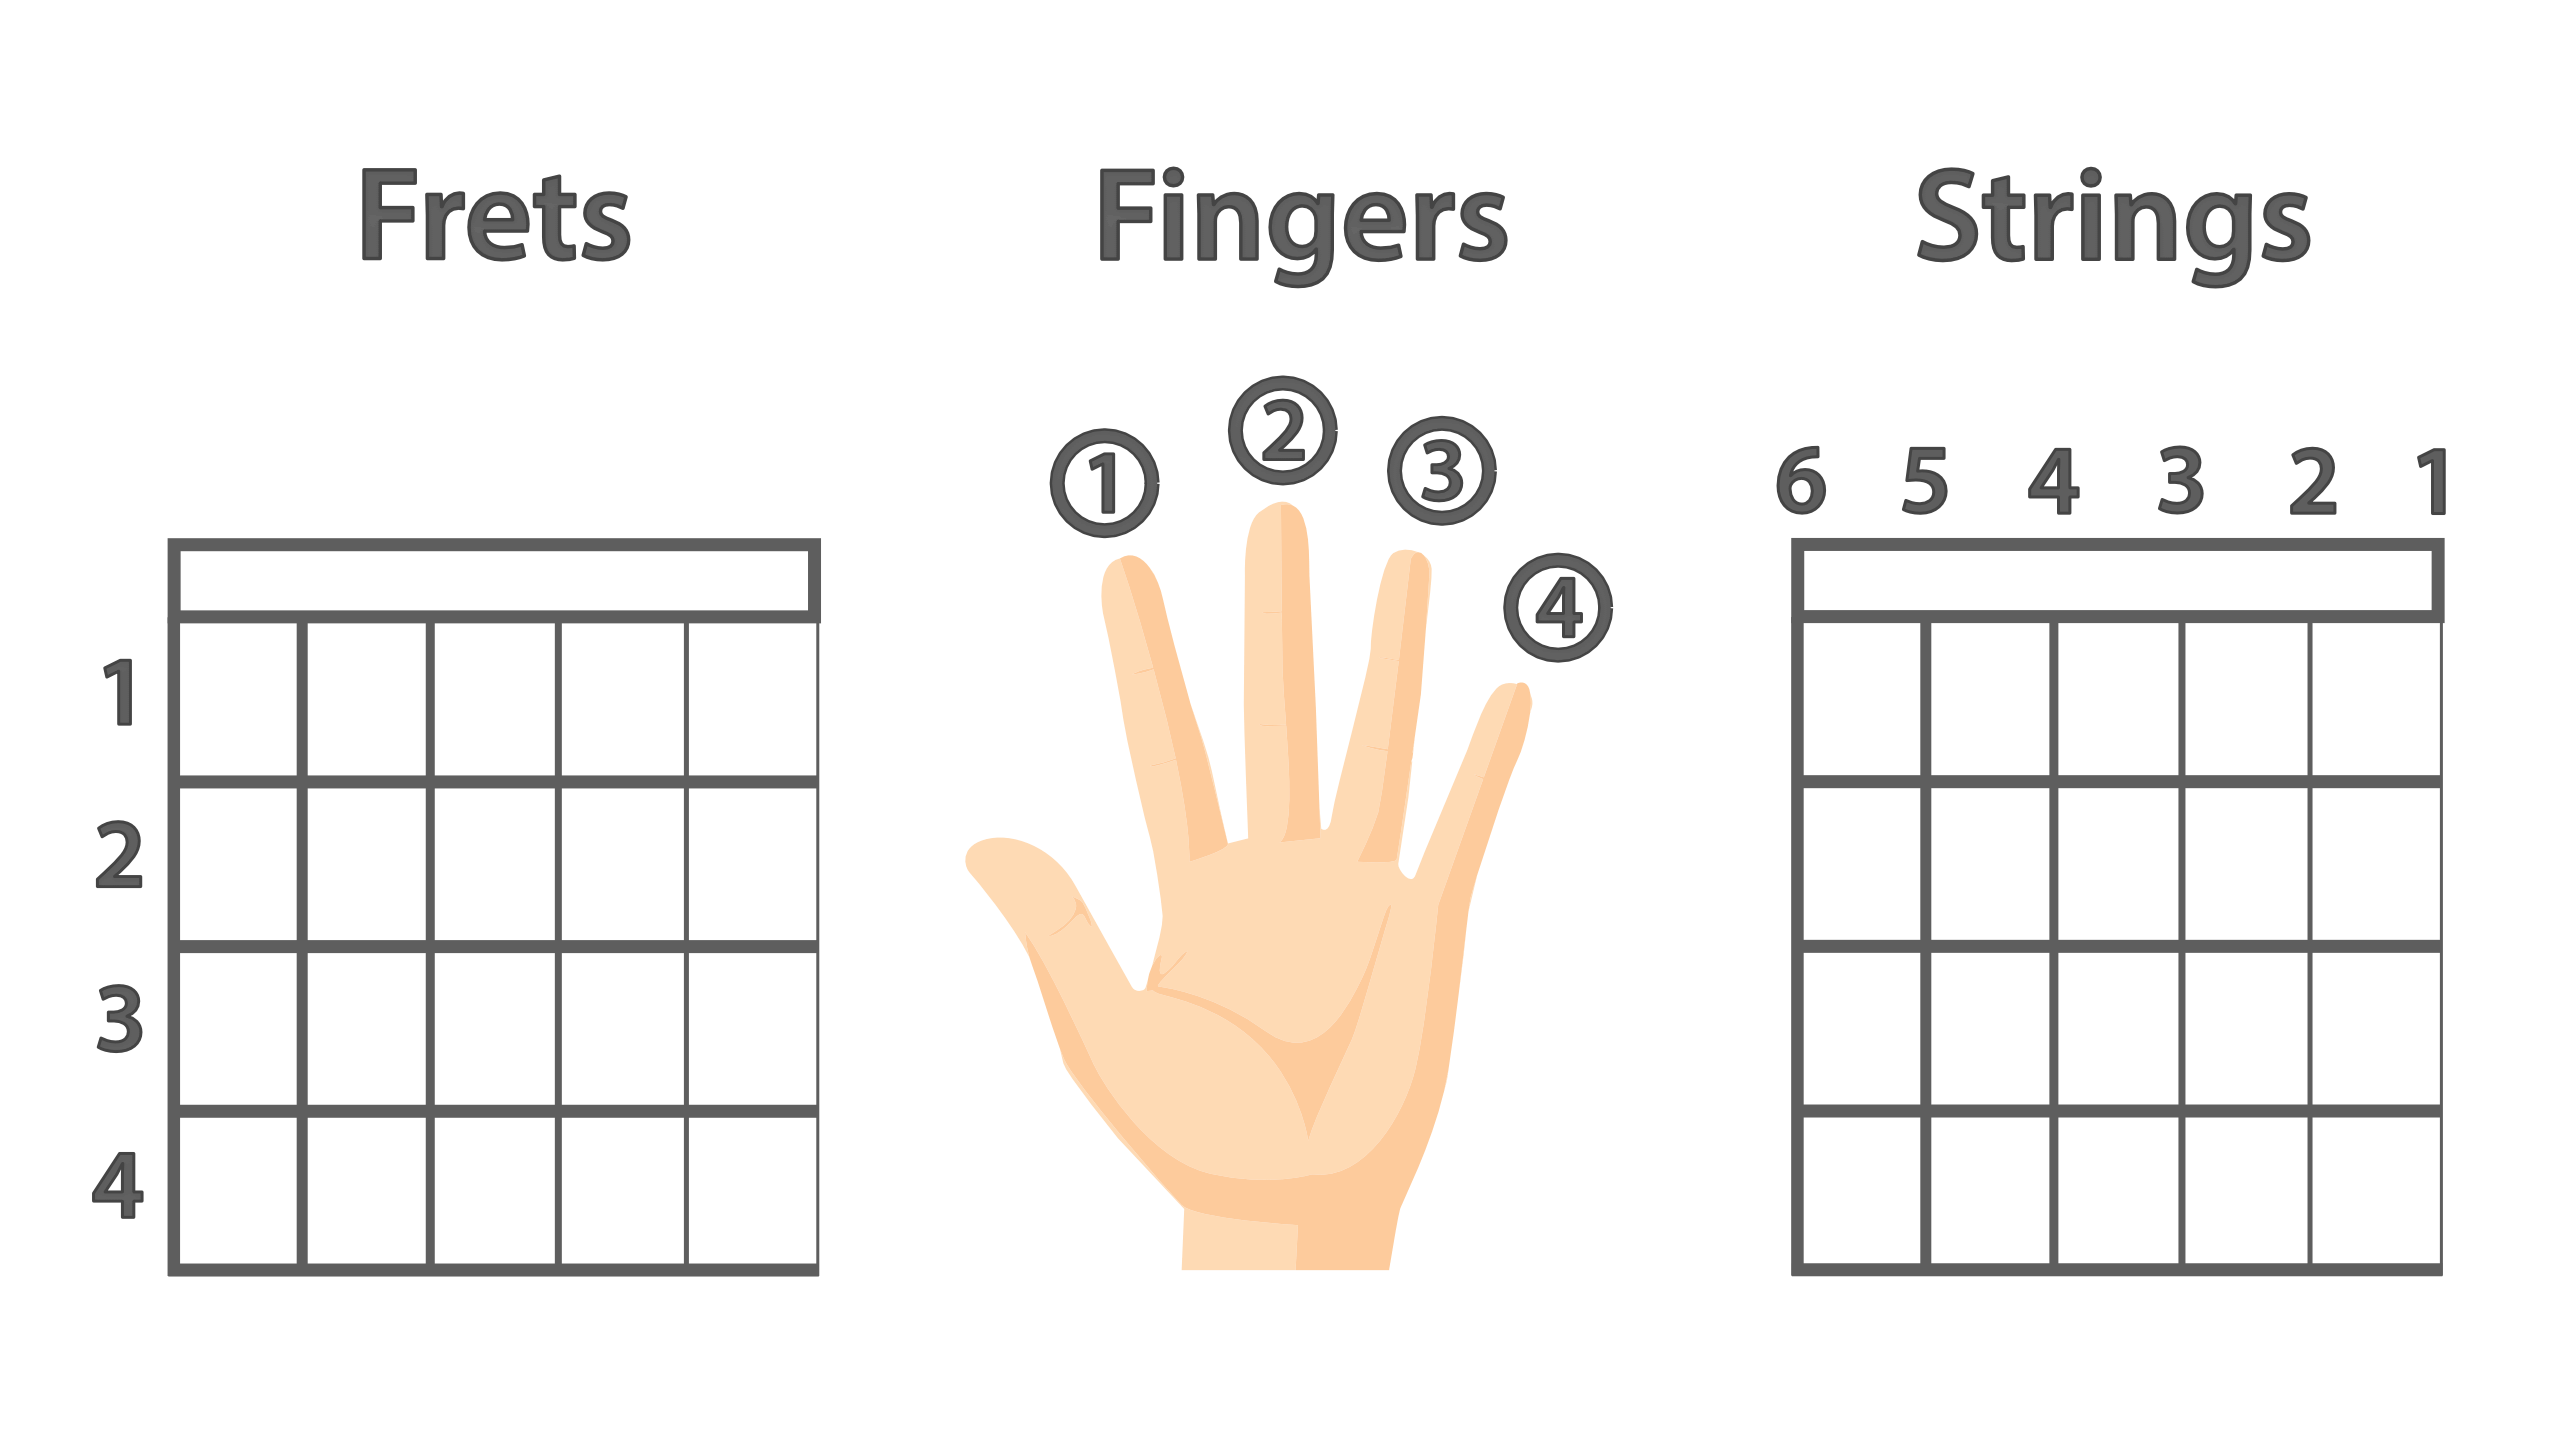 Frets, Fingers & Strings